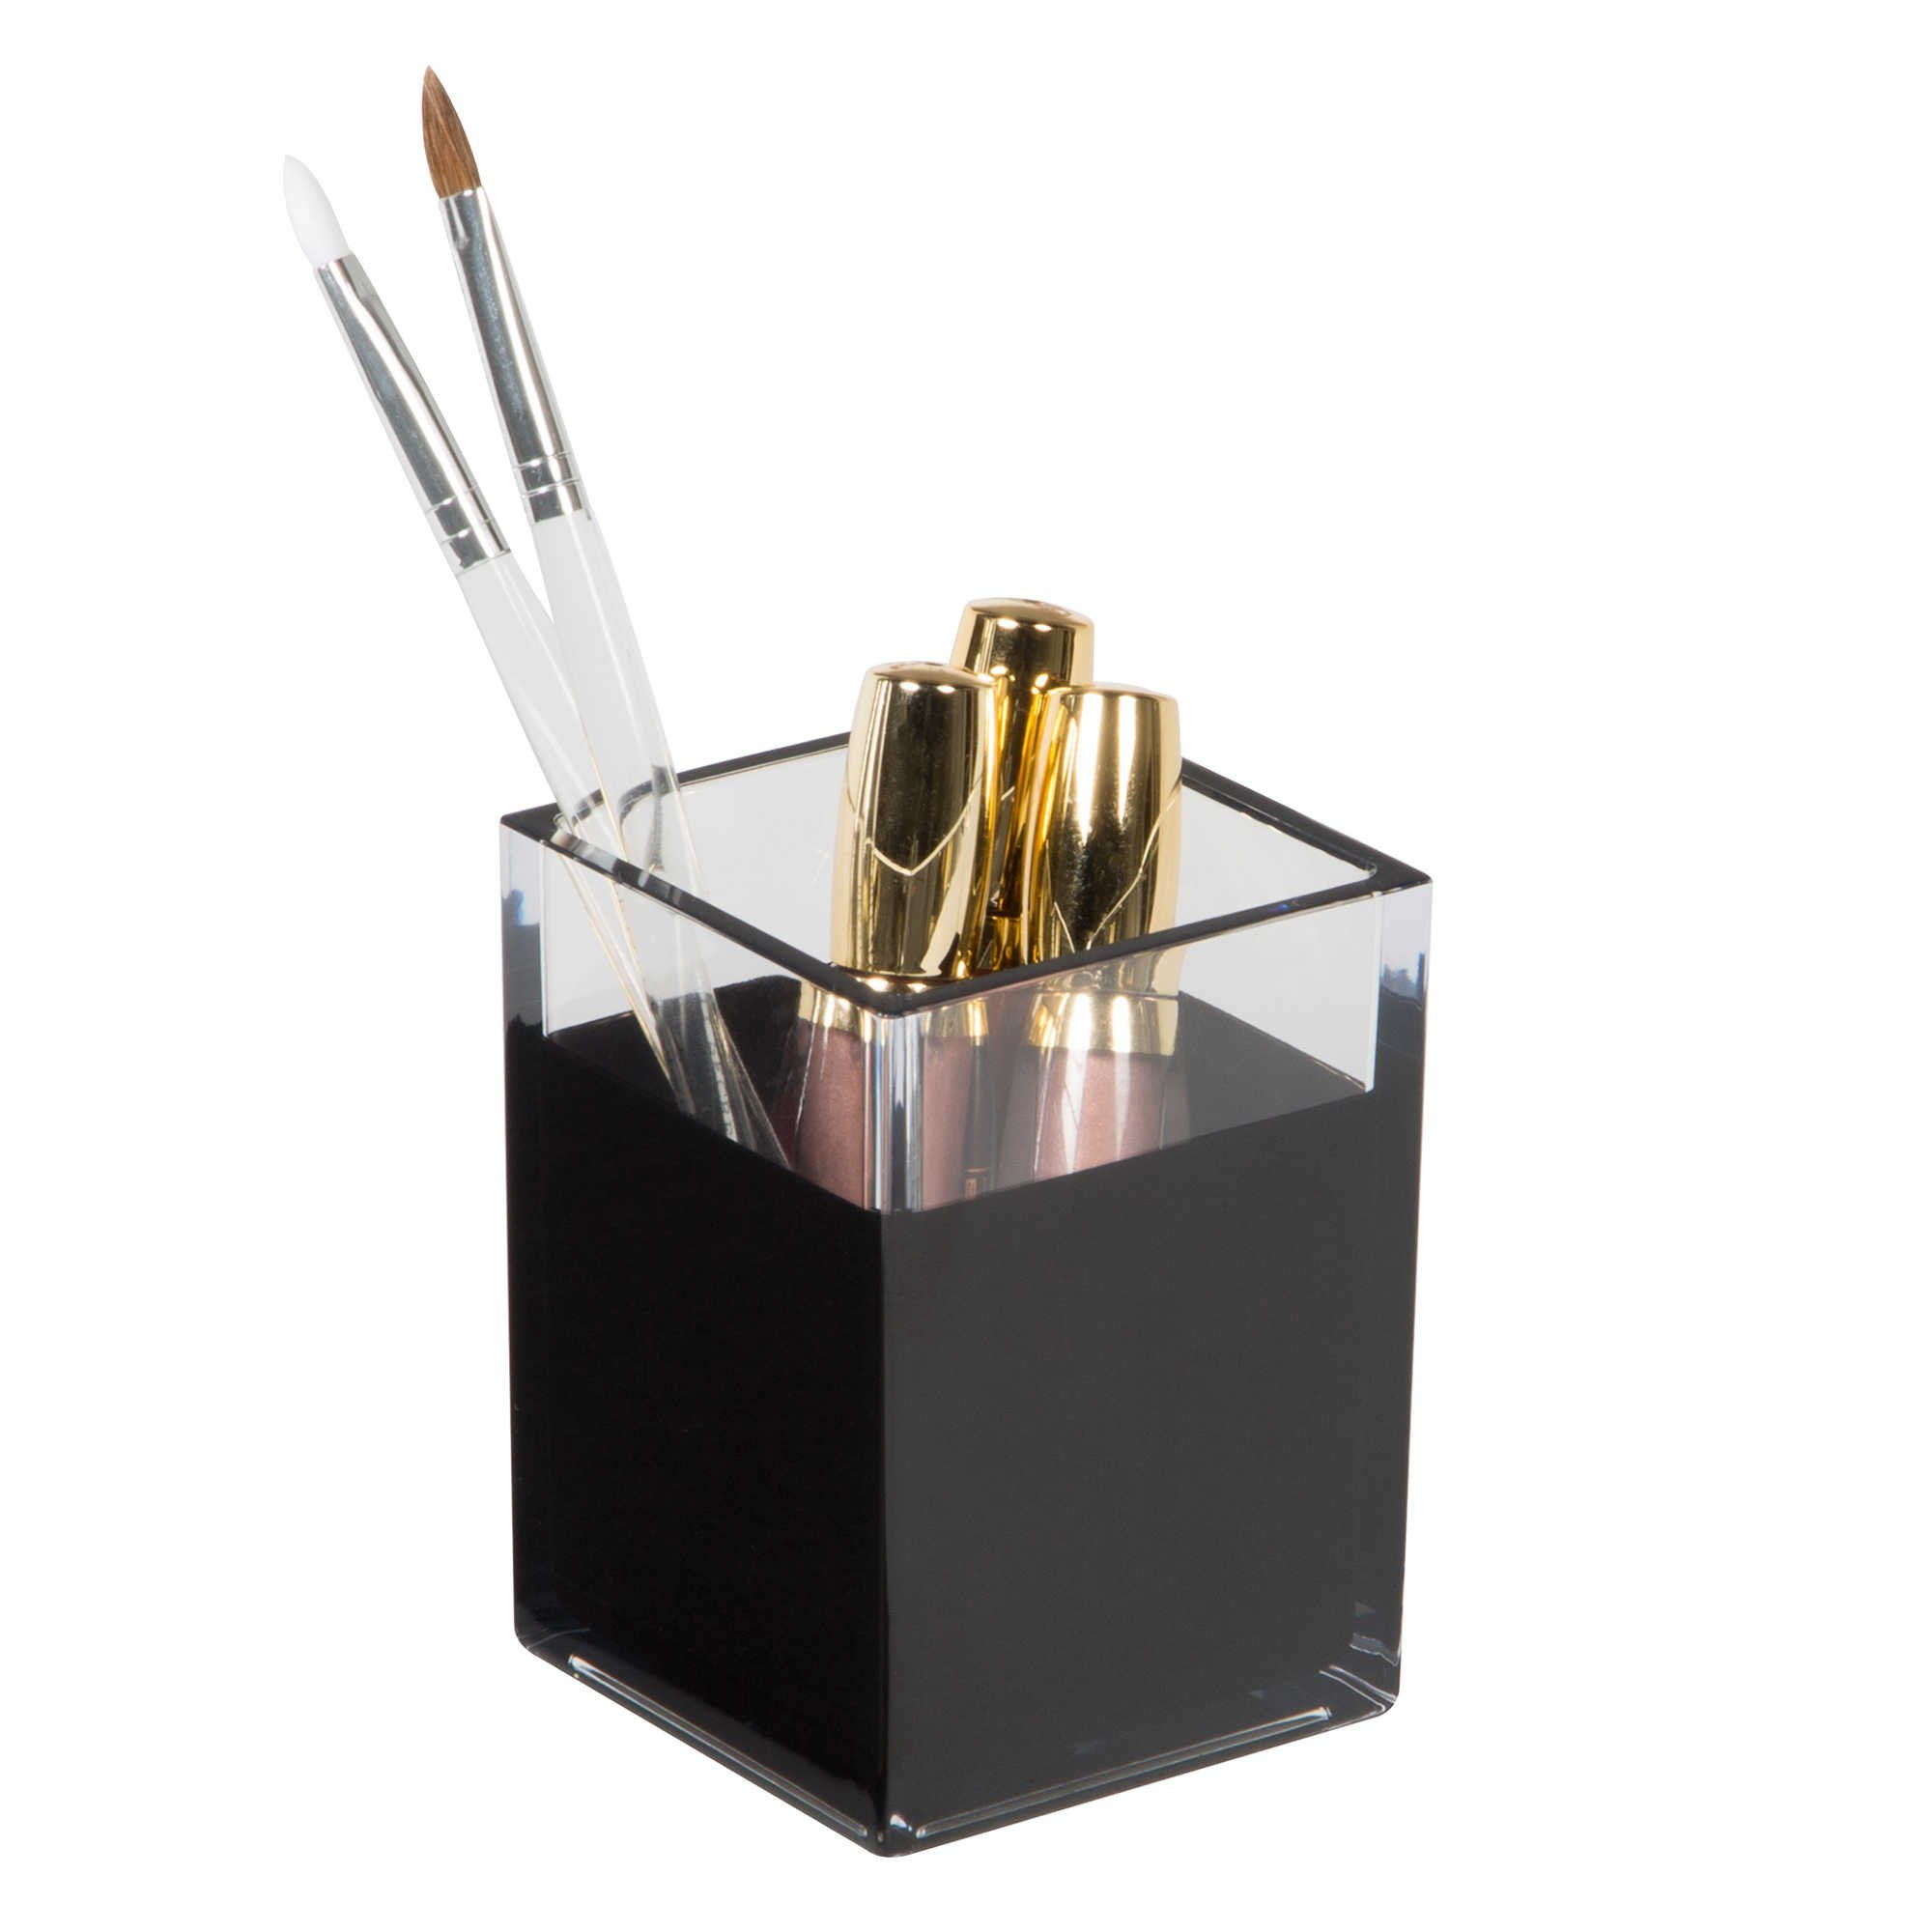 HomeCrate Modern Desk Organizer Pencil Cup, Set of 4 - Clear/Black by HomeCrate (Image #2)